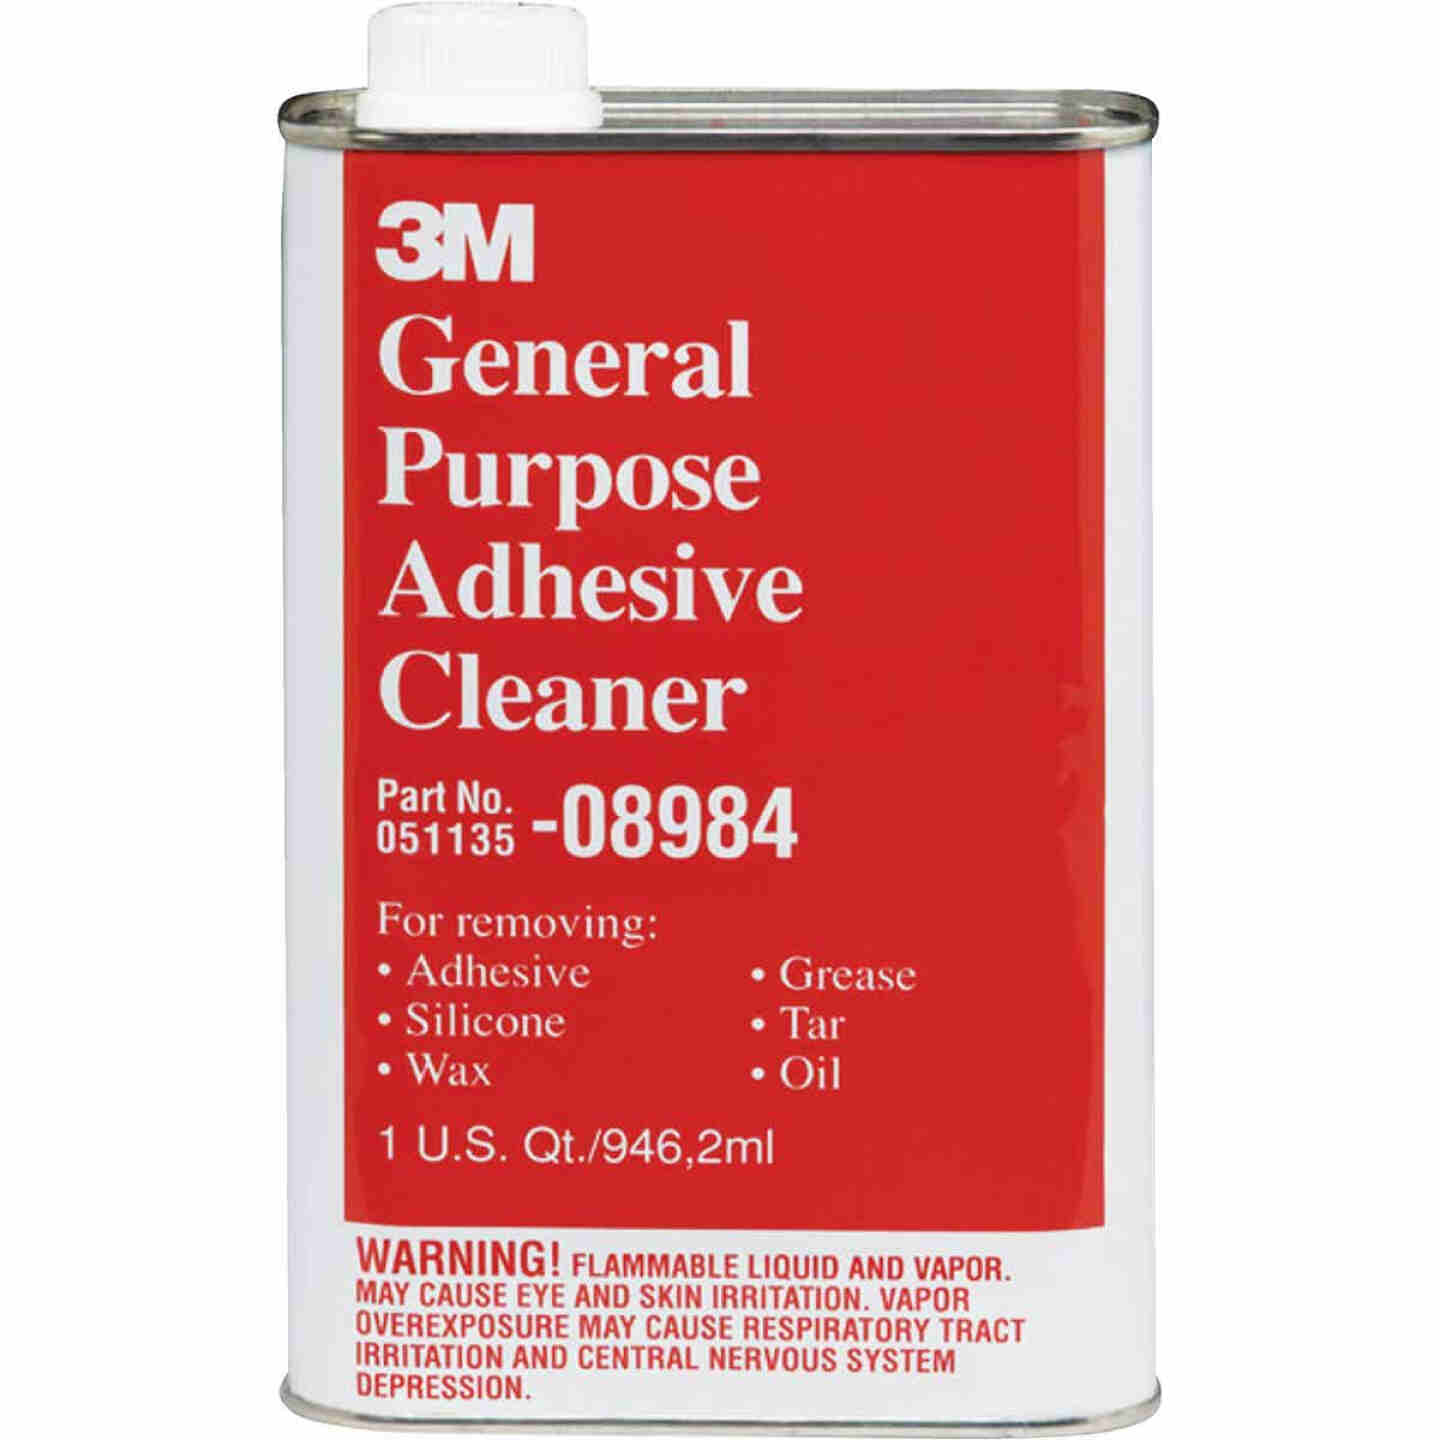 3M 1 Qt. Cleaner and Adhesive Remover Image 1